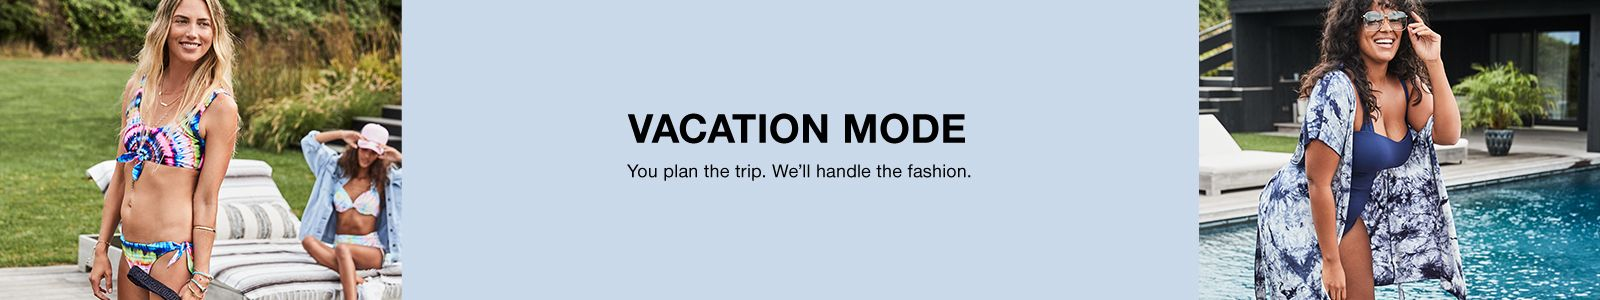 Vacation Mode, You plan the trip, We'll handle the fashion